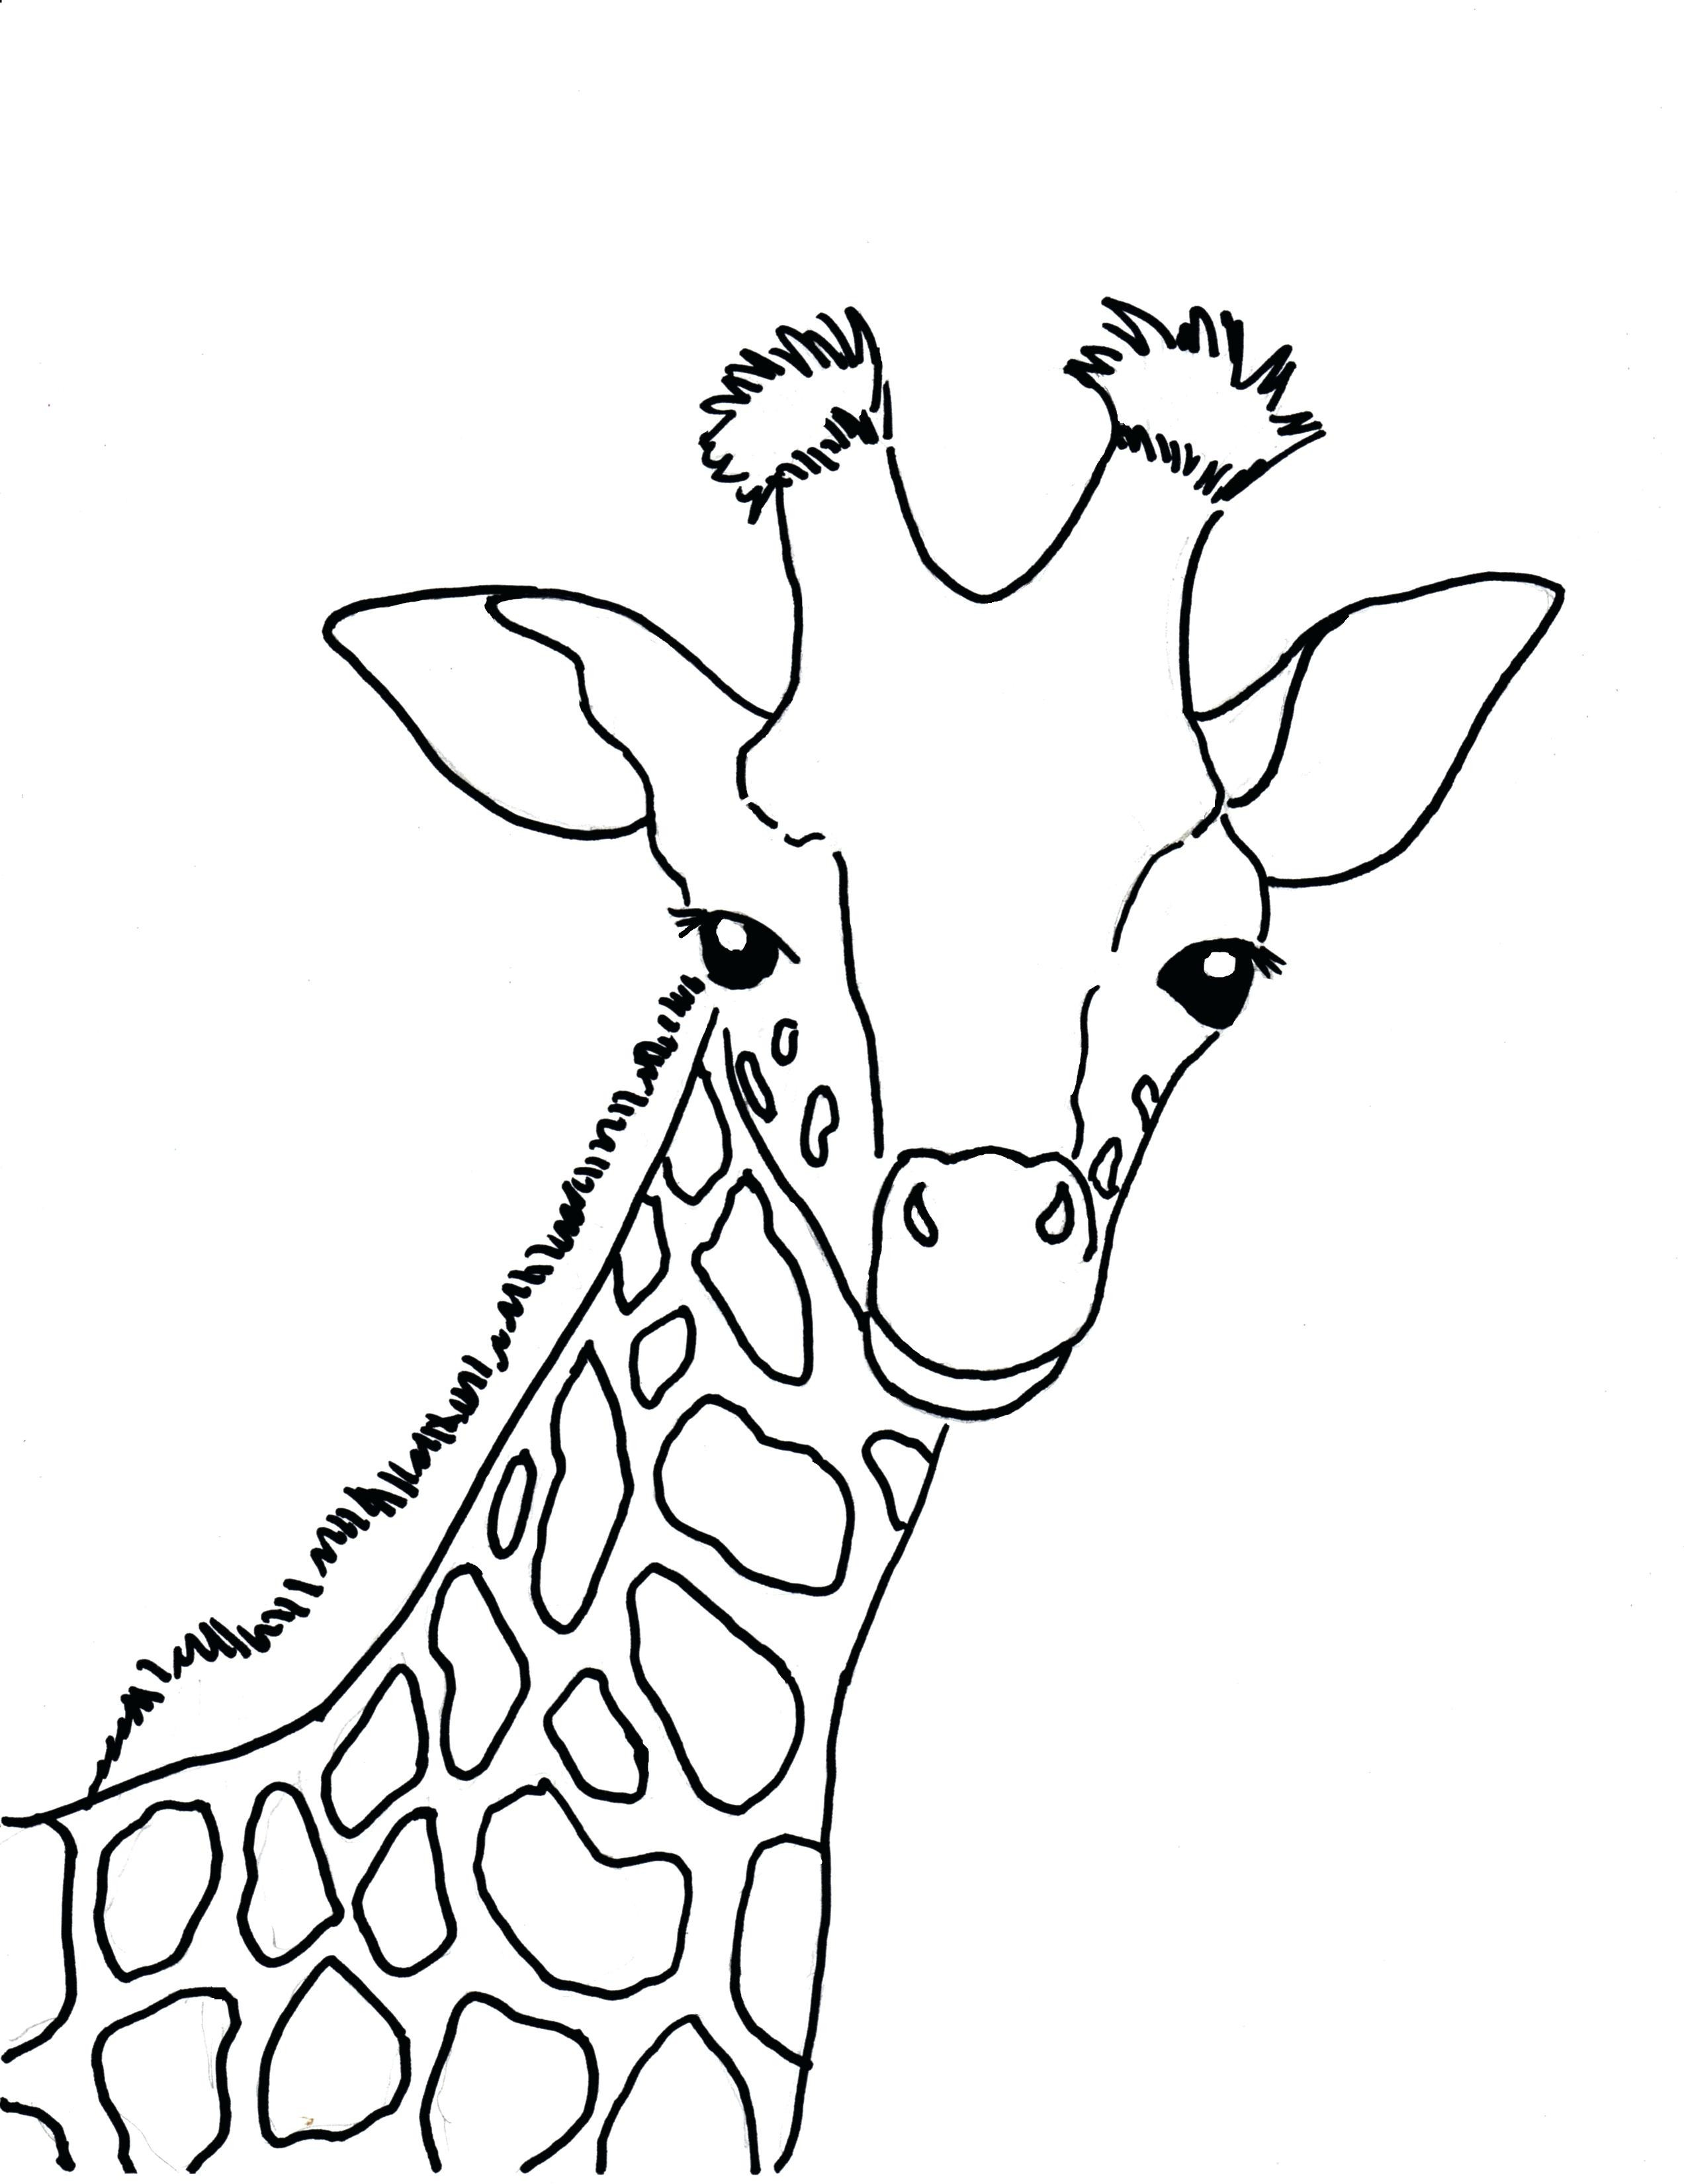 2545x3300 Cute Baby Giraffe Coloring Pages Polar Bear Sheet Kids Page Size